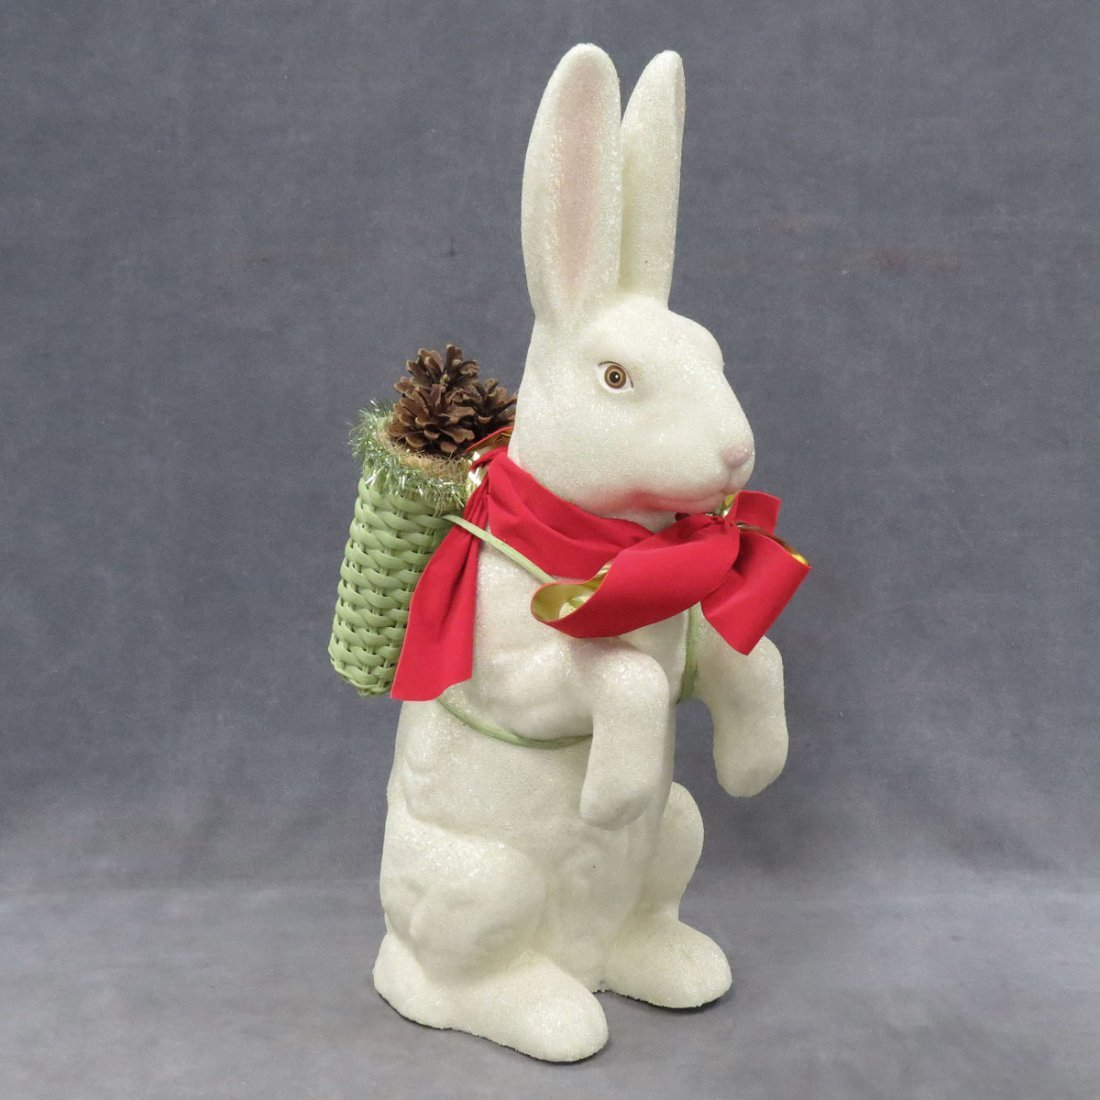 BEADED EASTER BUNNY DEPARTMENT STORE DISPLAY